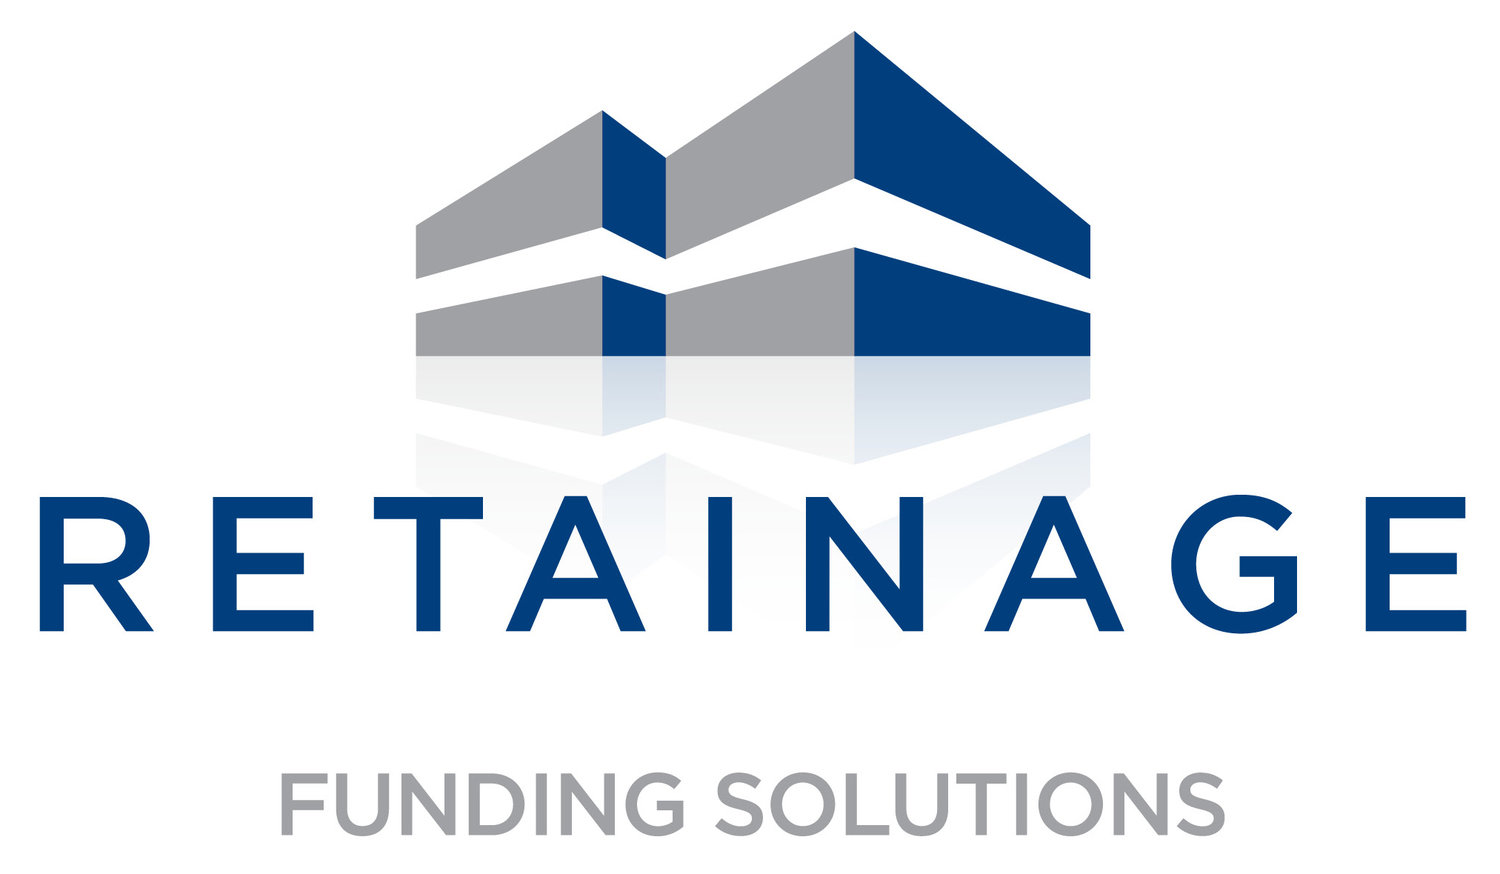 Retainage Funding Solutions